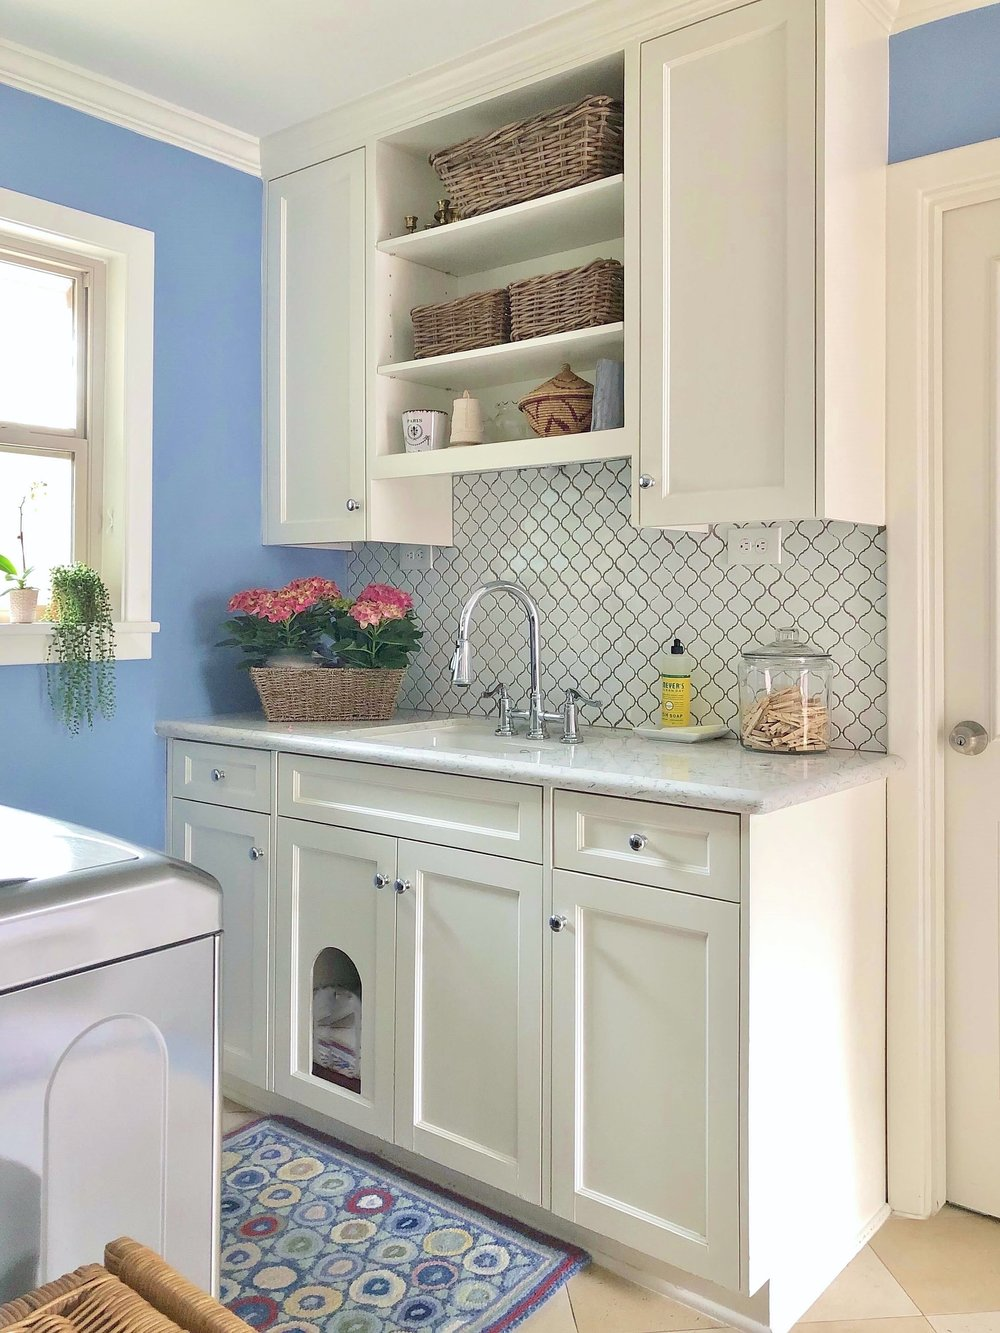 Pretty laundry room in periwinkle blue, cabinetry with deep utility sink and cubby for the cat box | Carla Aston, Designer